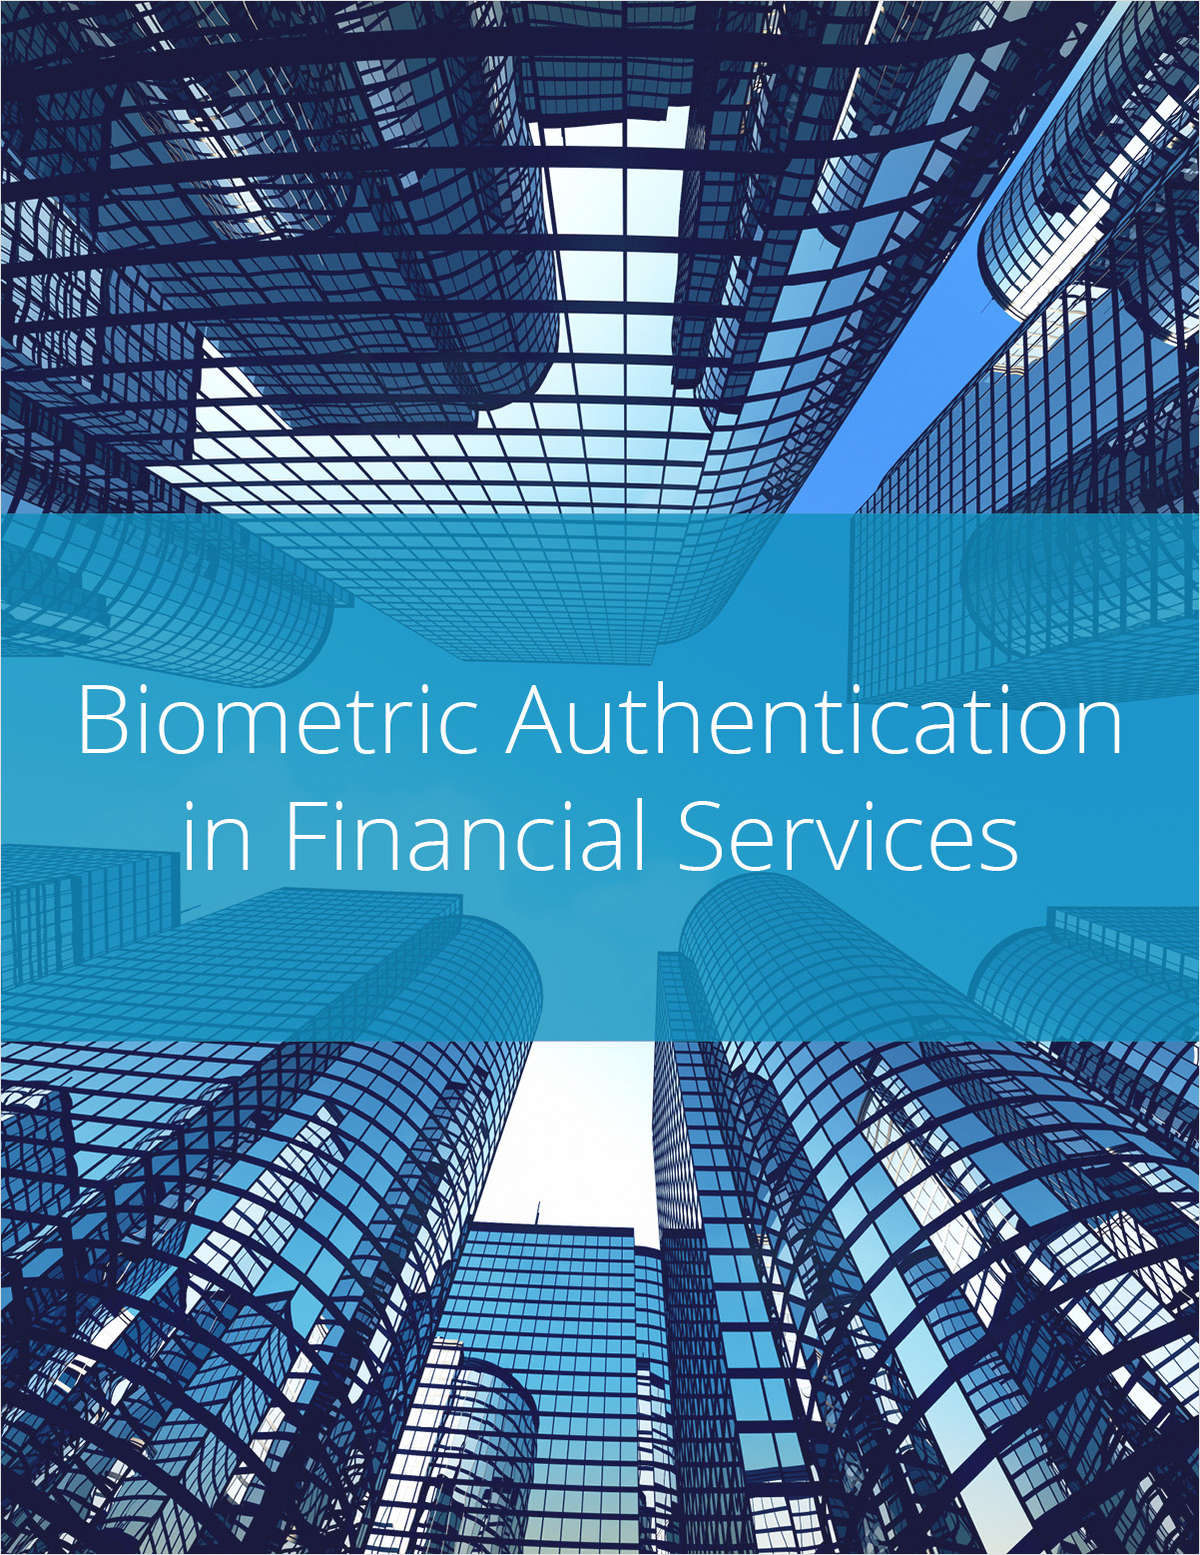 Biometric Authentication in Financial Services